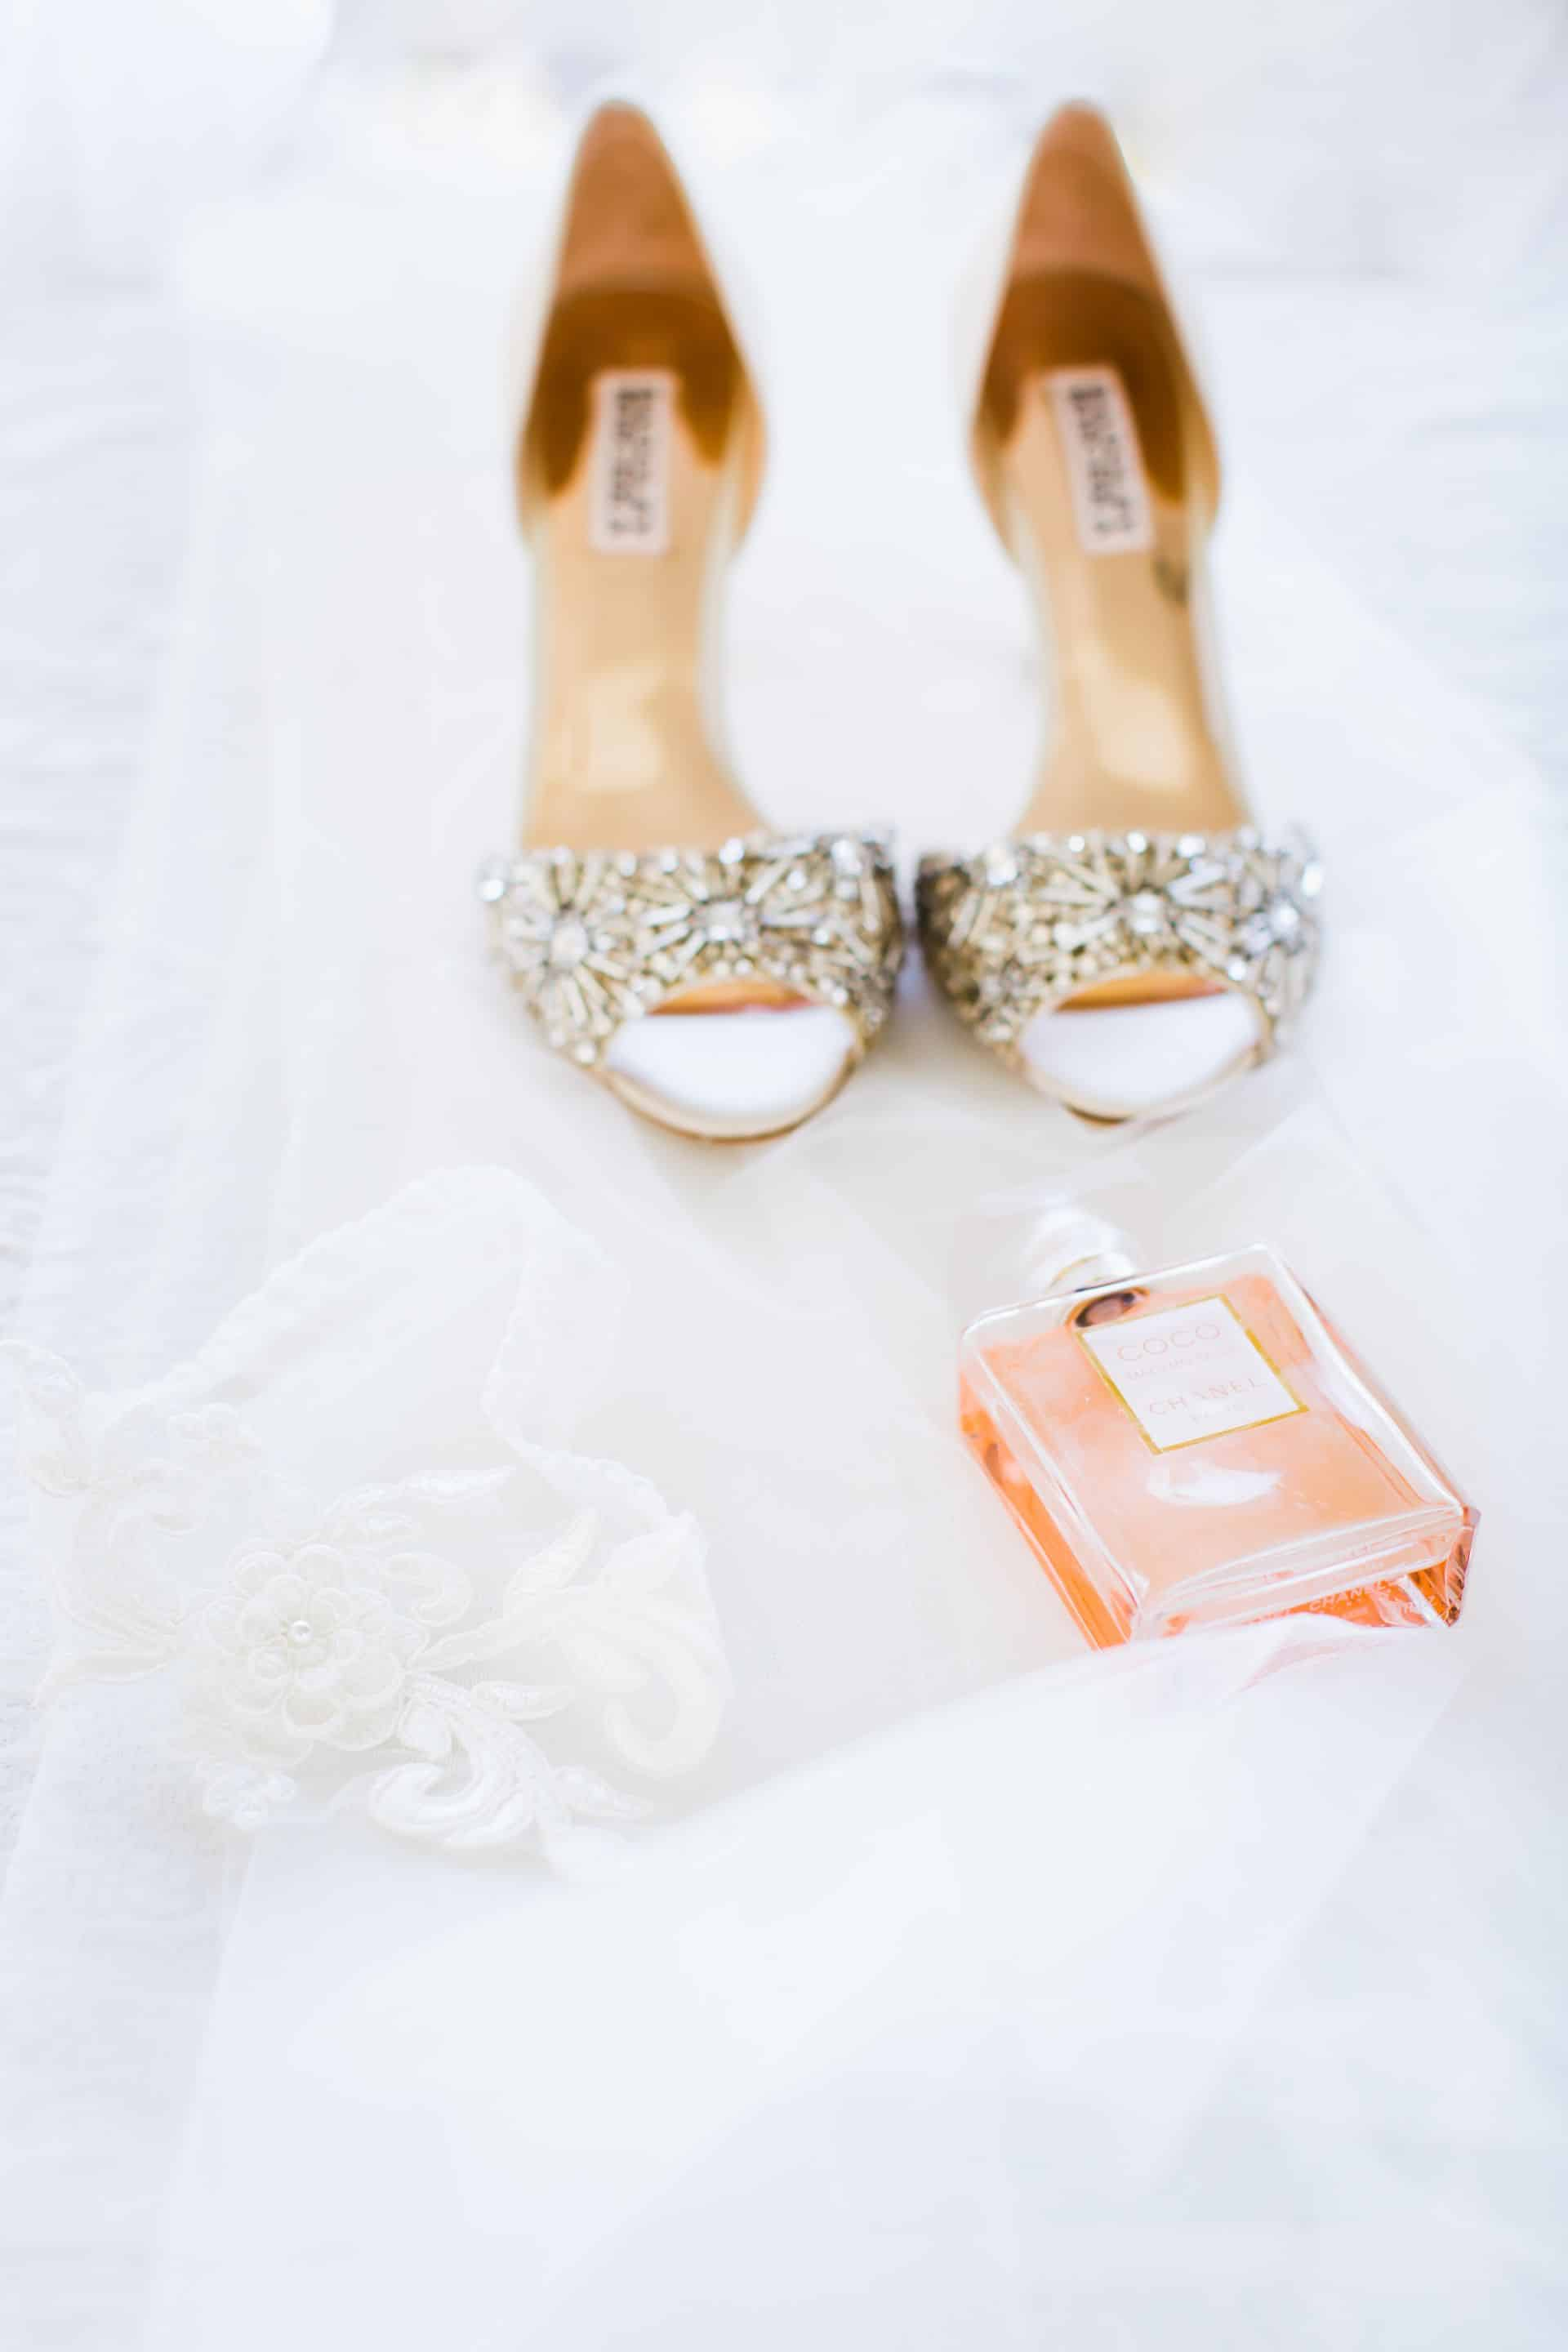 Sparkly wedding shoes details shot | Maui's Angels